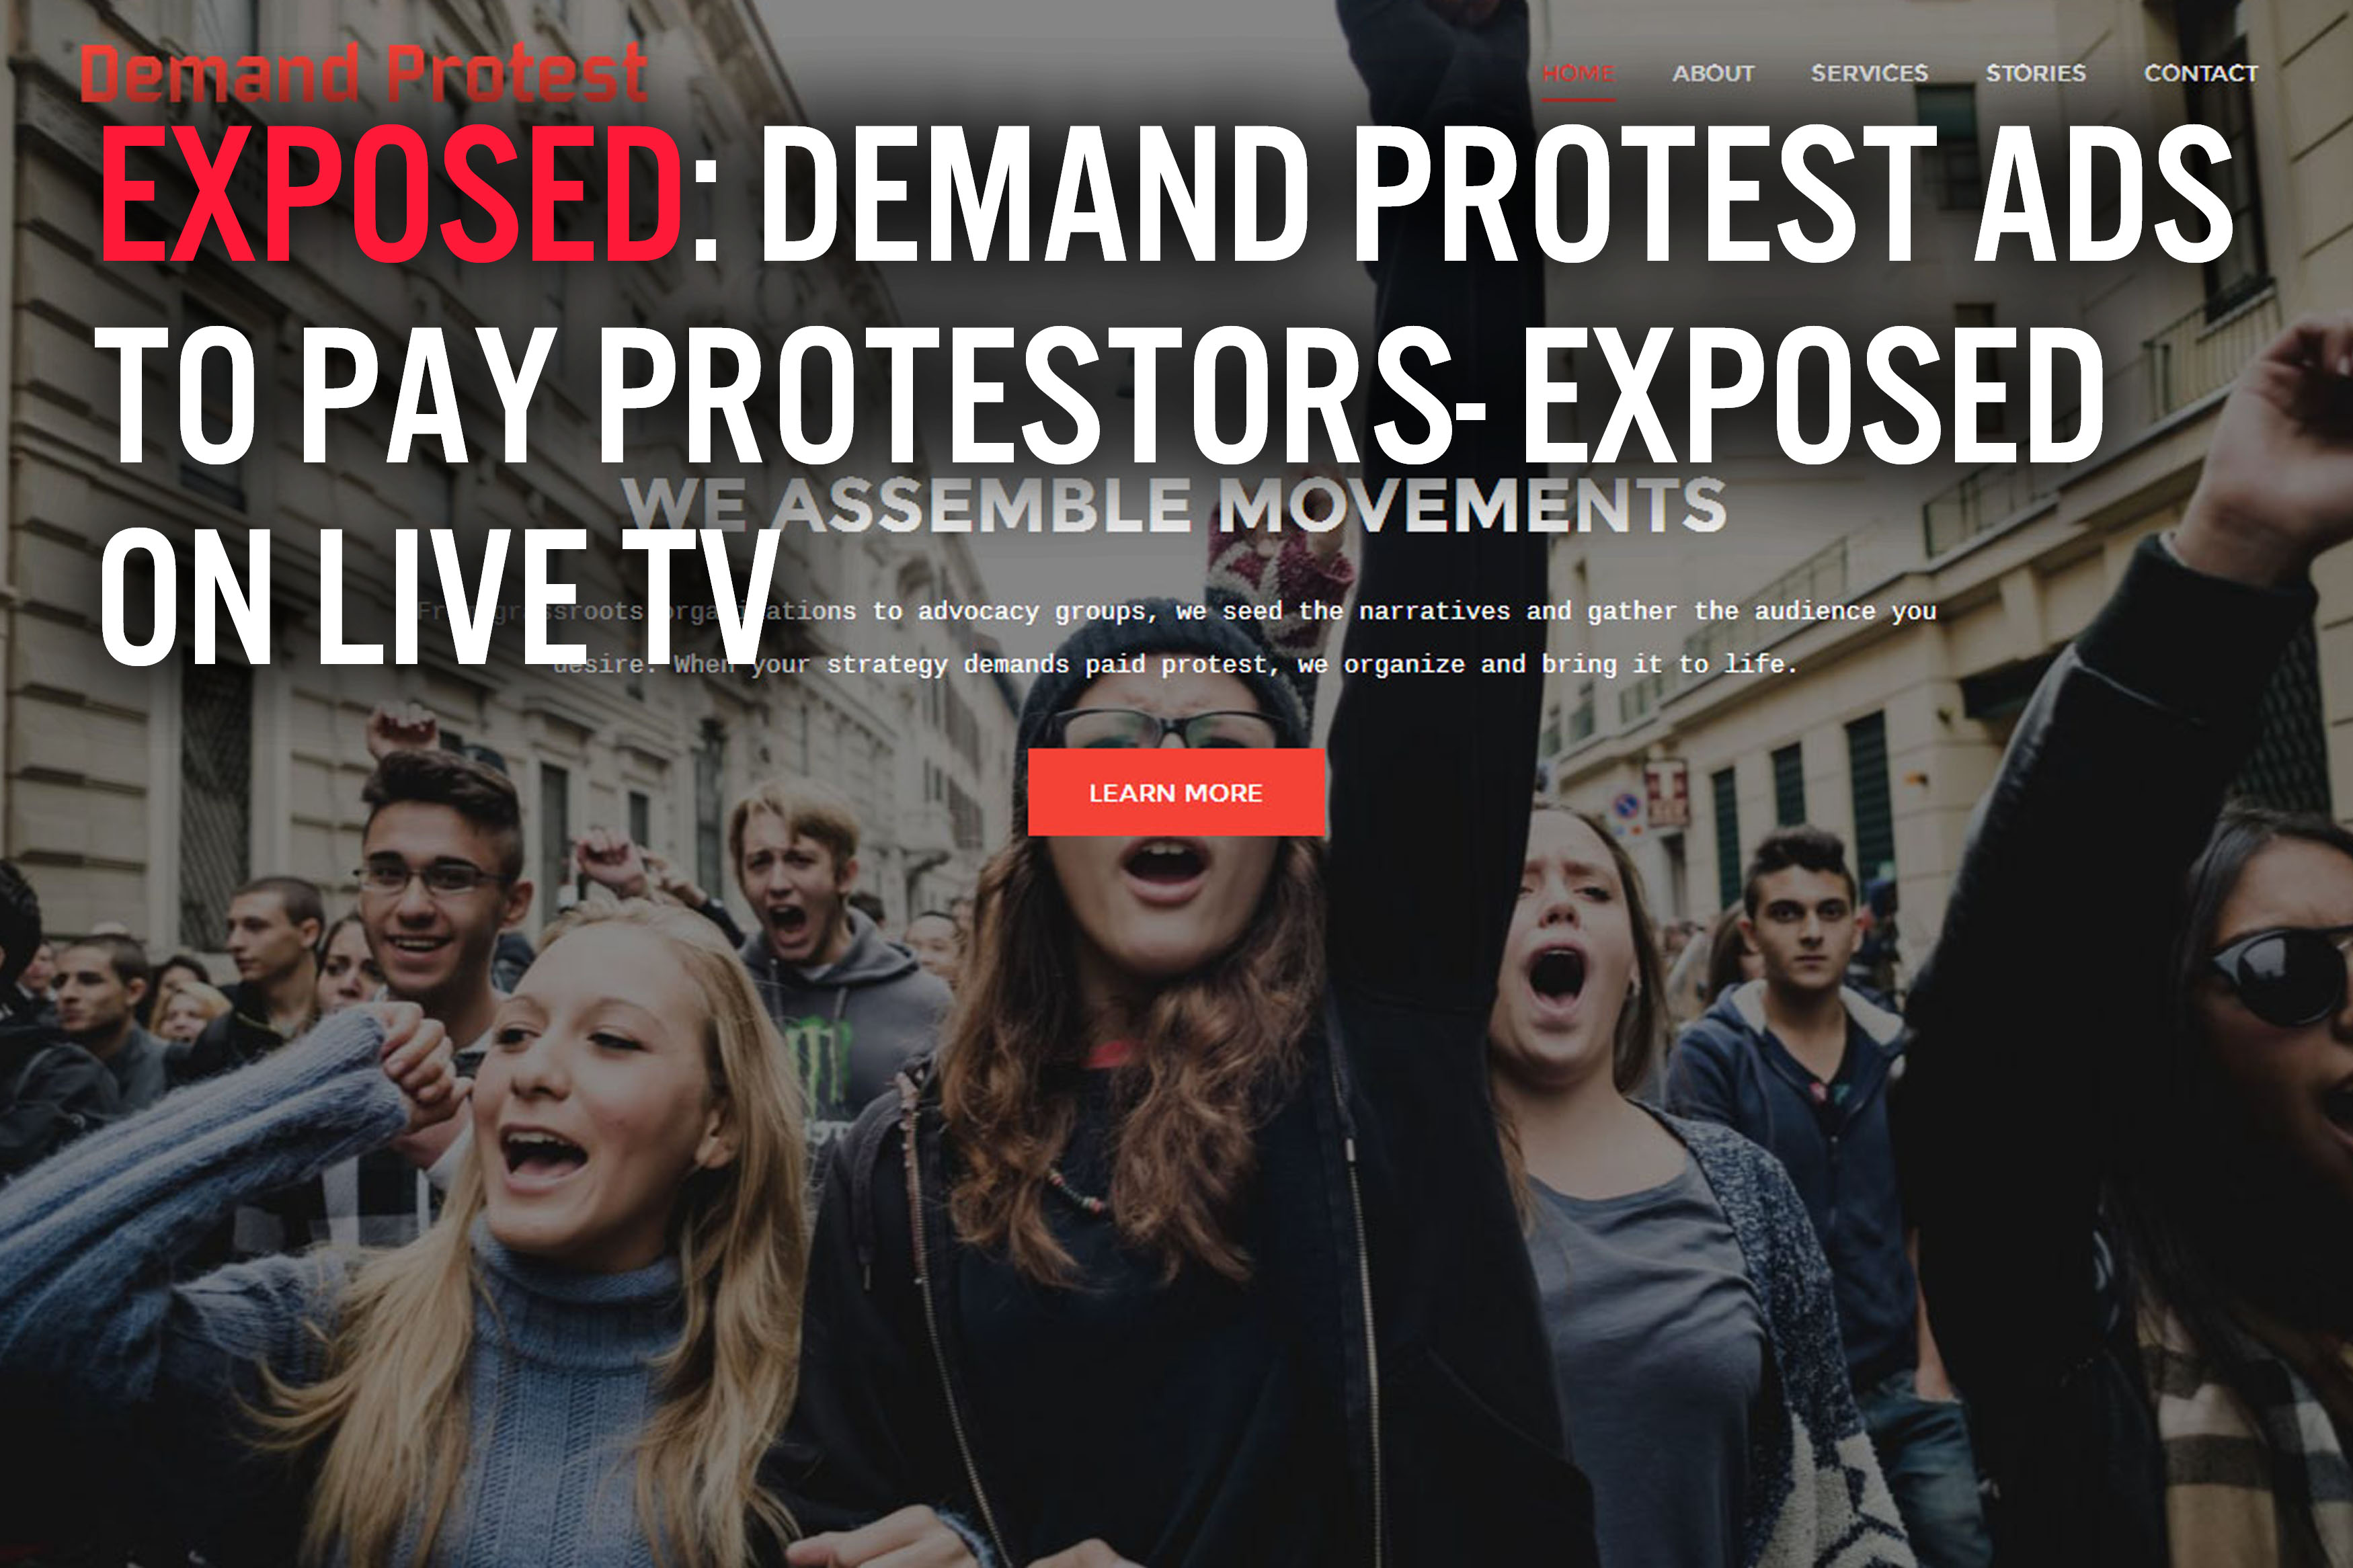 Demand Protest Exposed